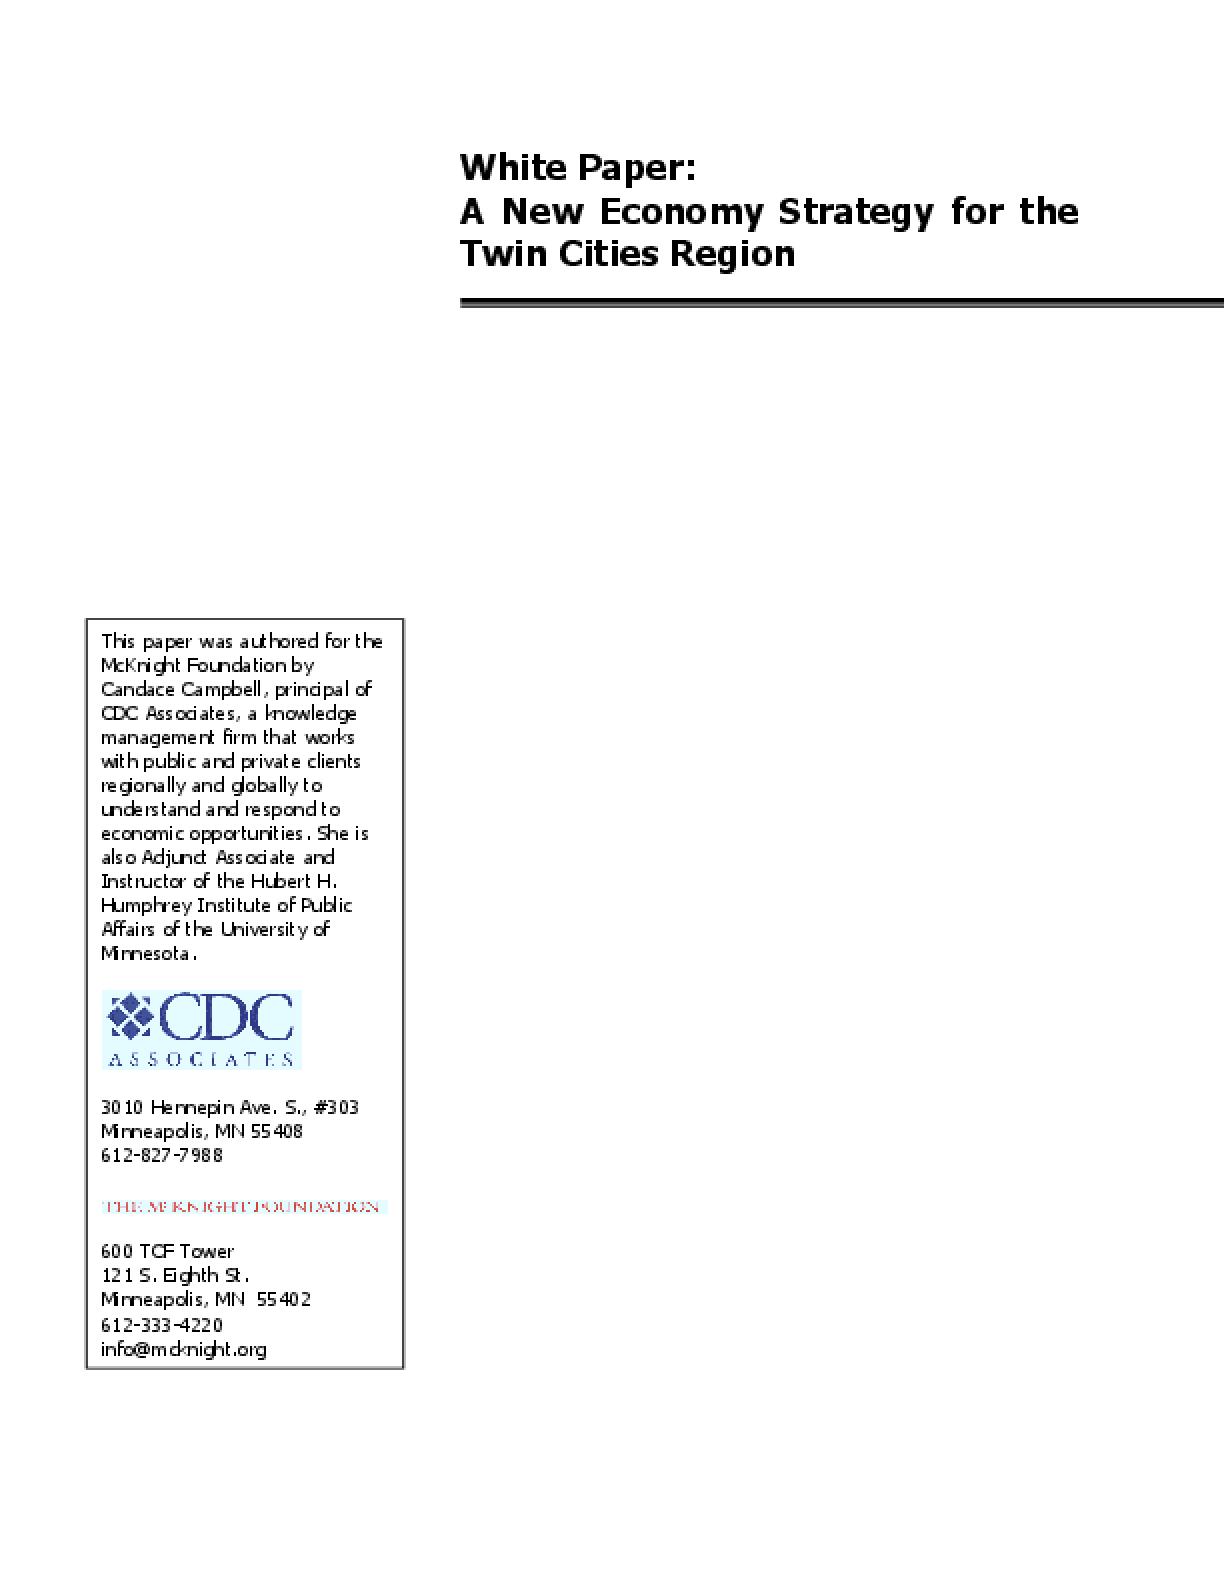 A New Economy Strategy for the Twin Cities Region